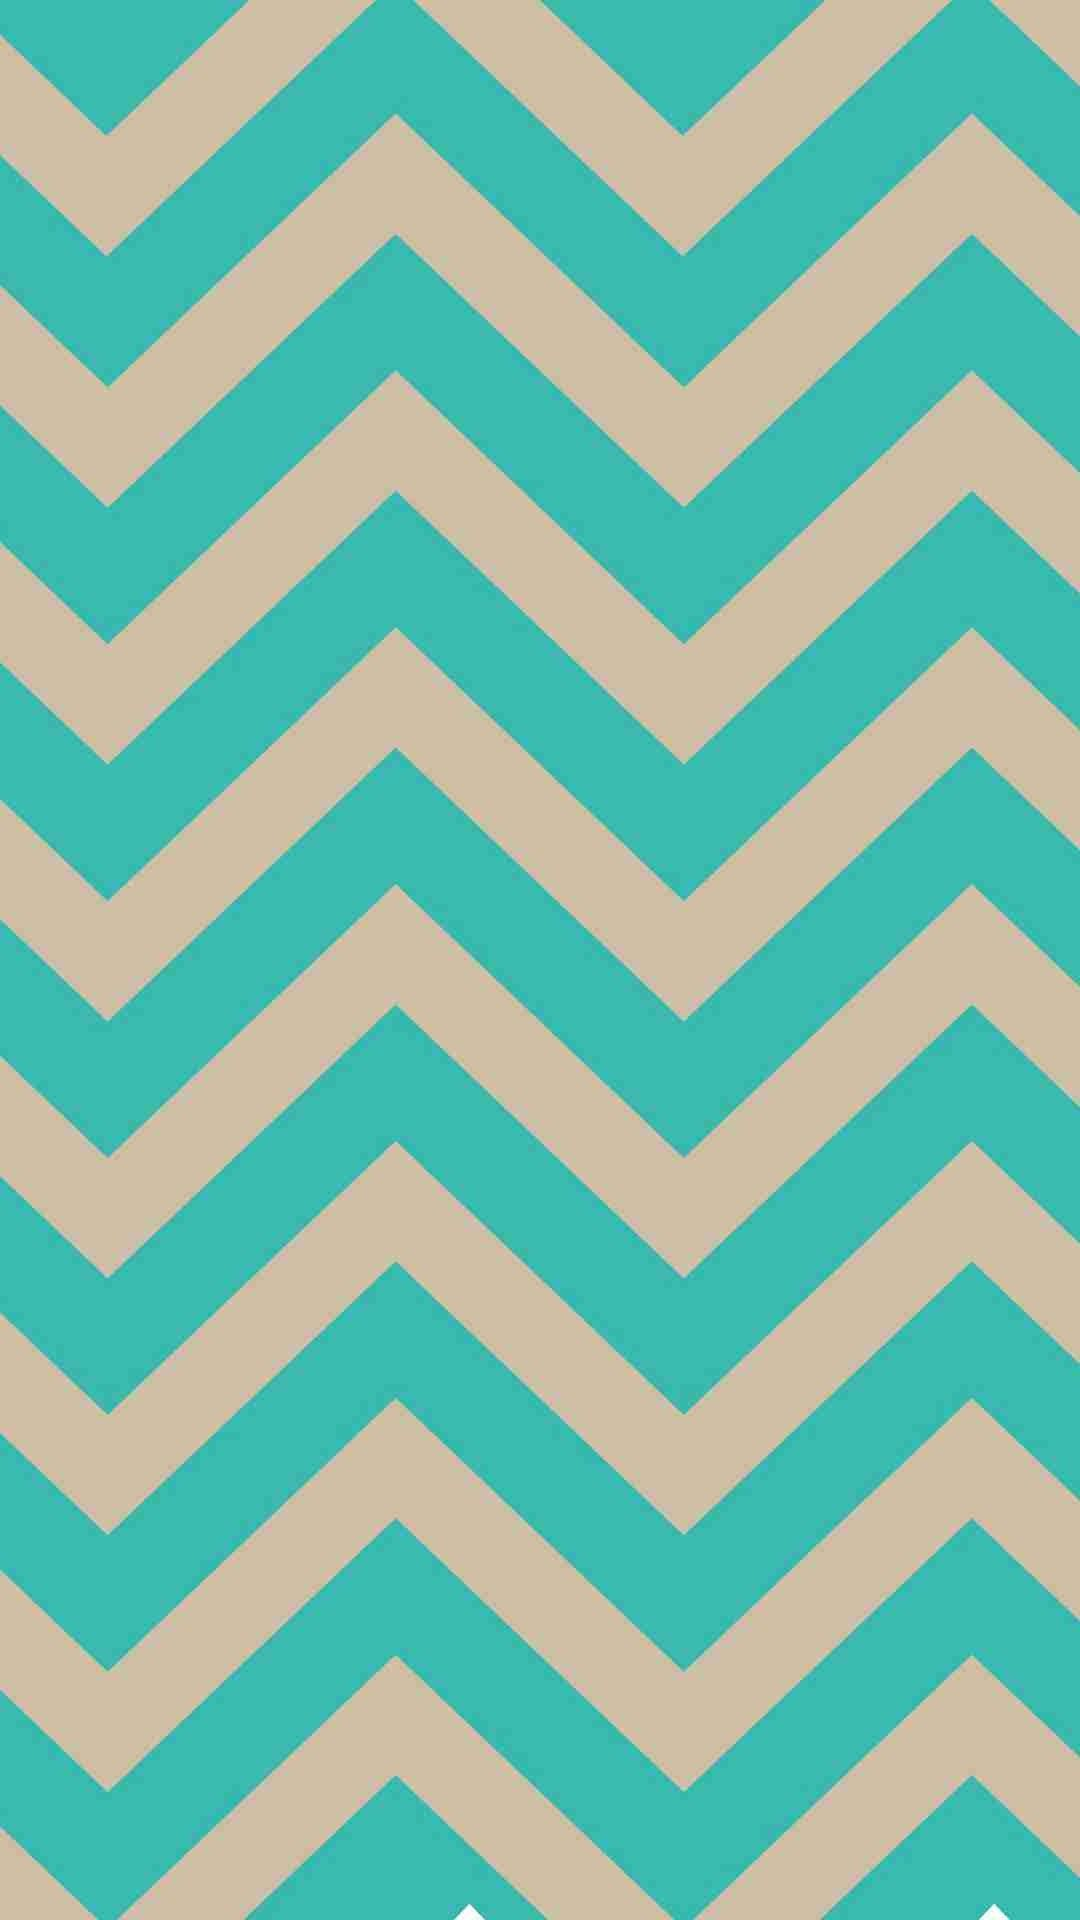 Turquoise Blue And Ivory Chevron Iphone 6 Plus Wallpaper